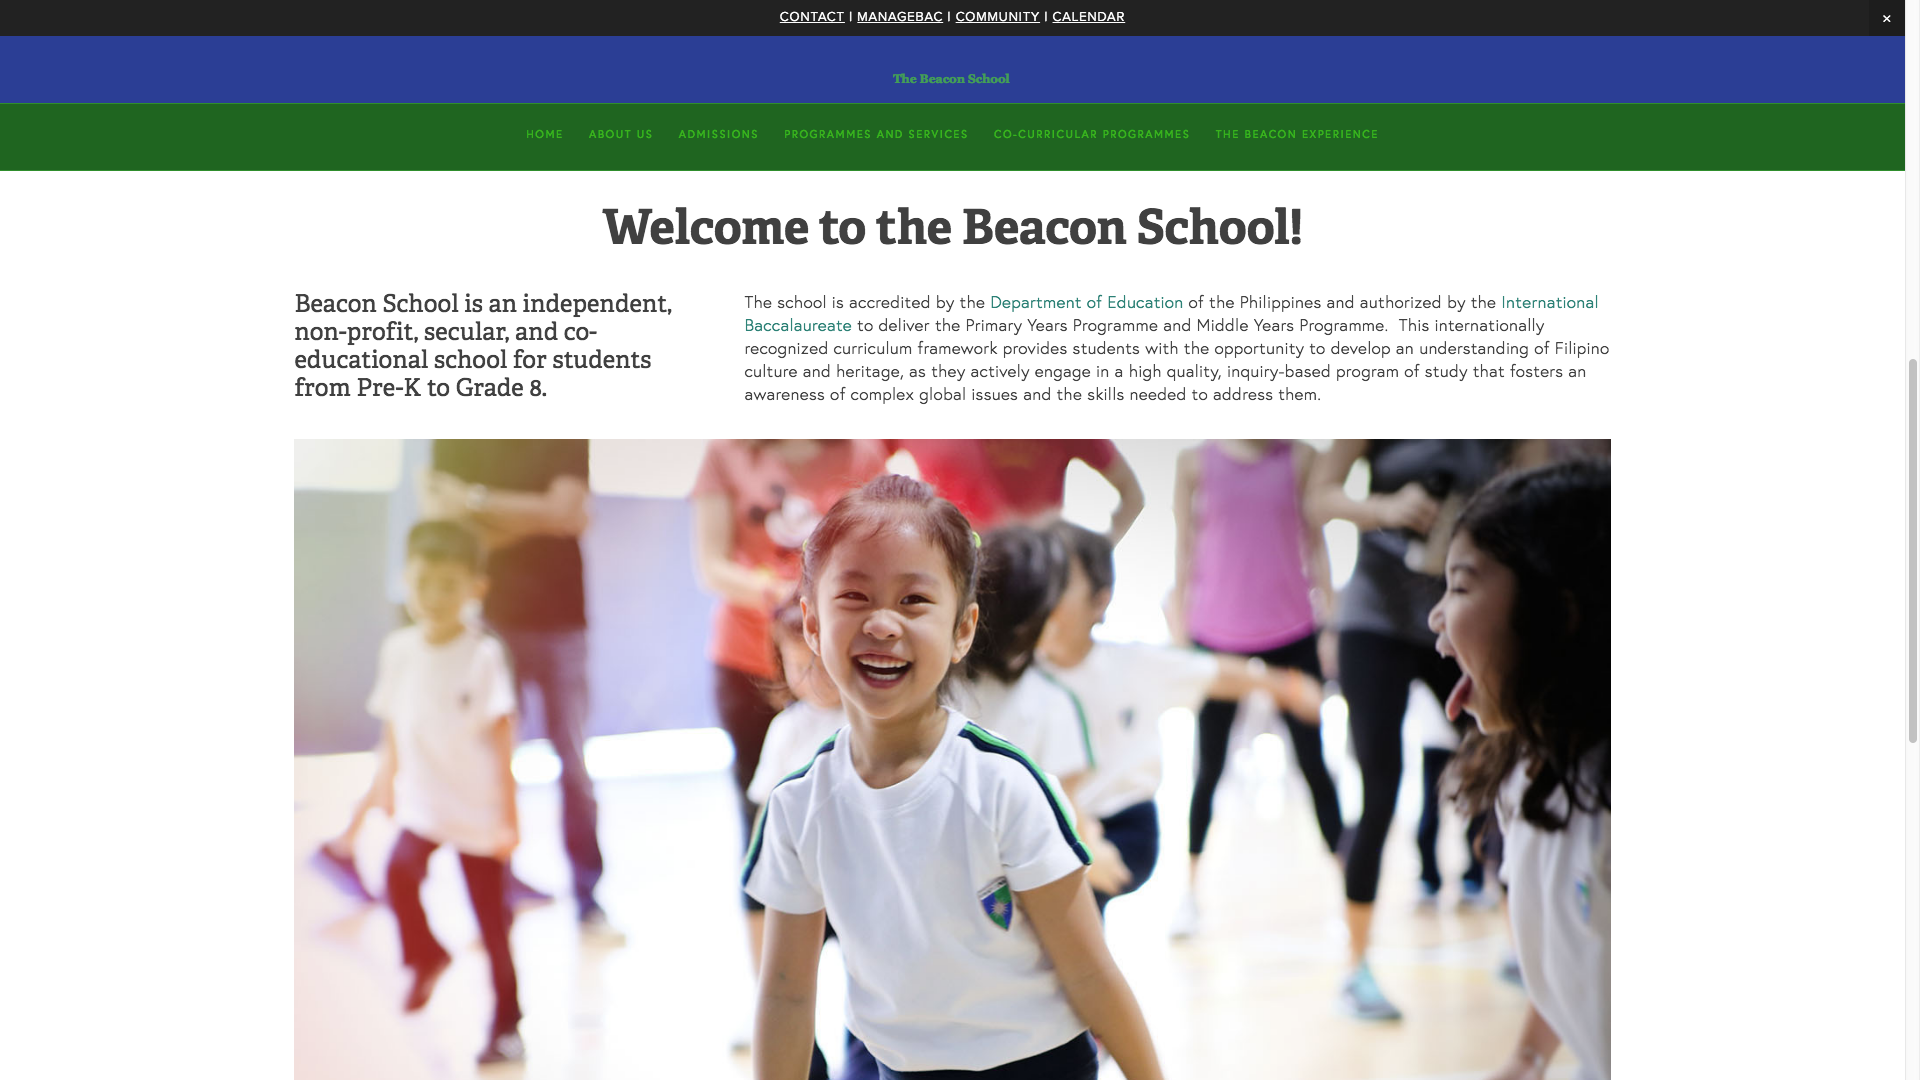 Independent non-profit, secular and co-educational school from Pre-K to Grade 8.  Visit  www.beaconschool.ph